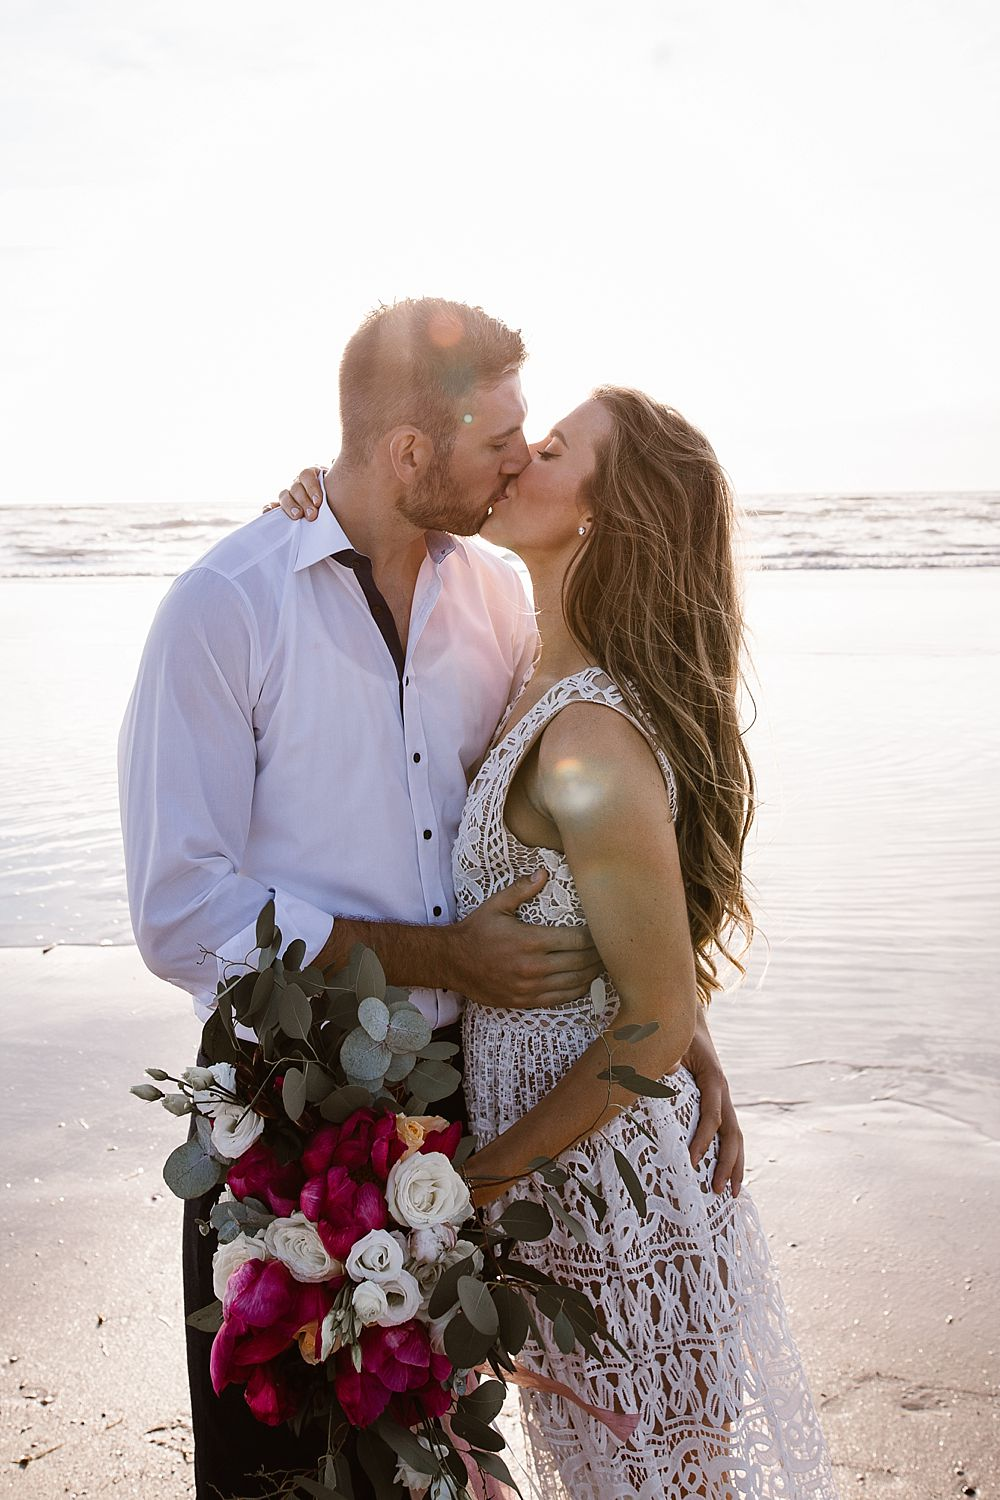 CP 089 - Chloe & Philipp - A Classy Engagement Session on the Beach